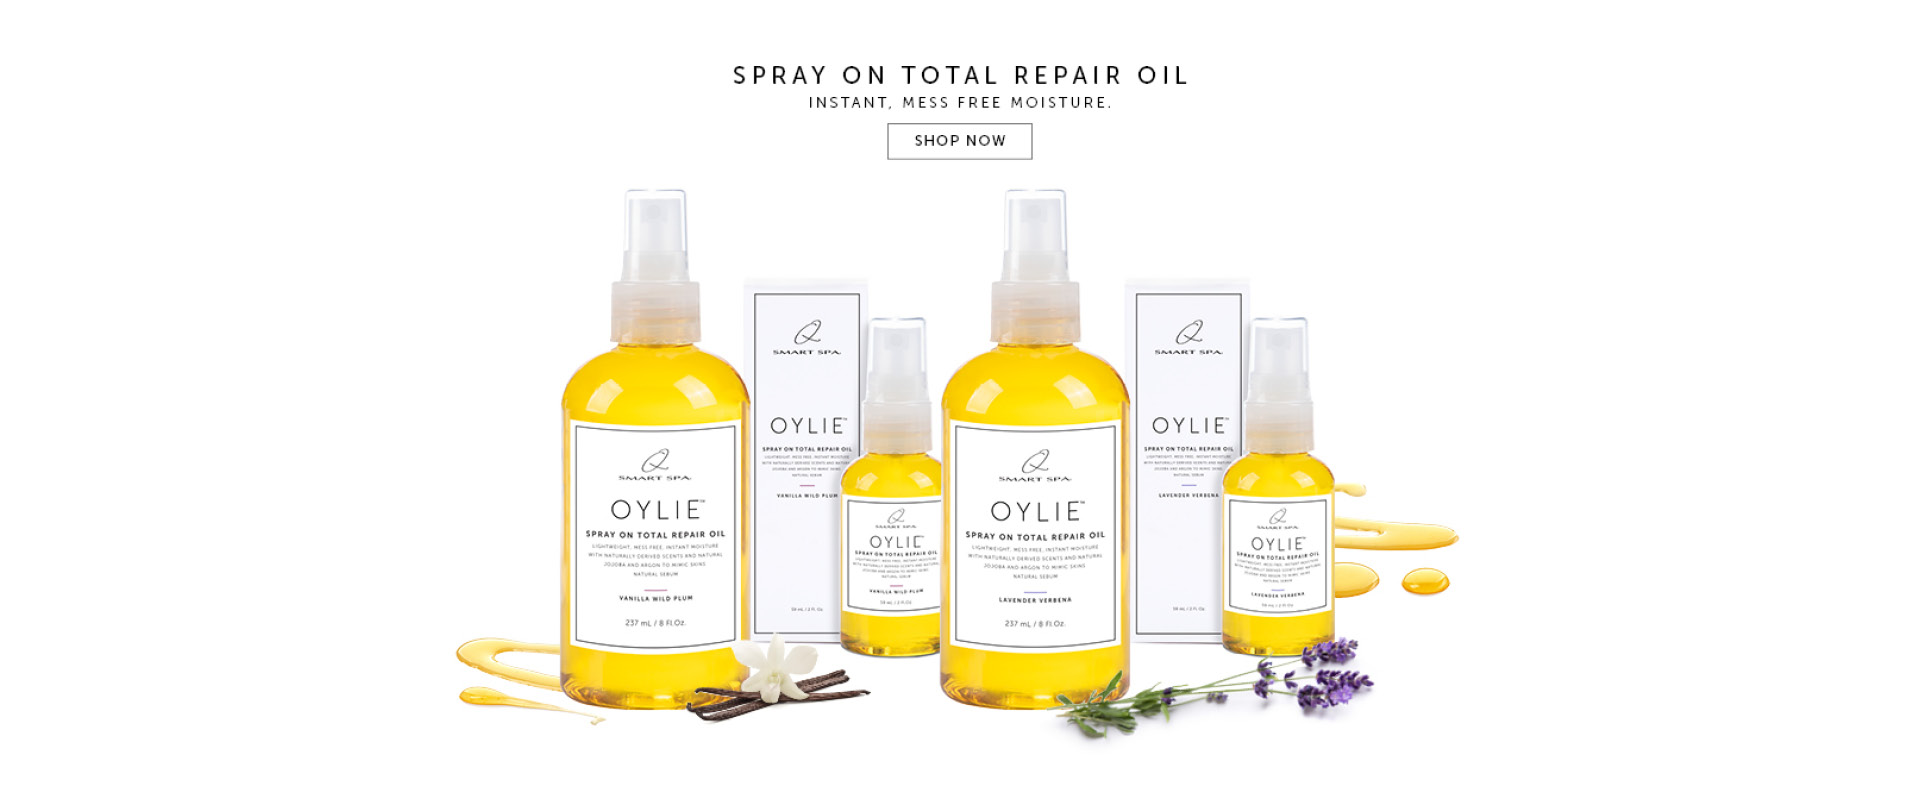 Oylie Spray on total repair oil. Instant Mess Free Moisture. Shop Now